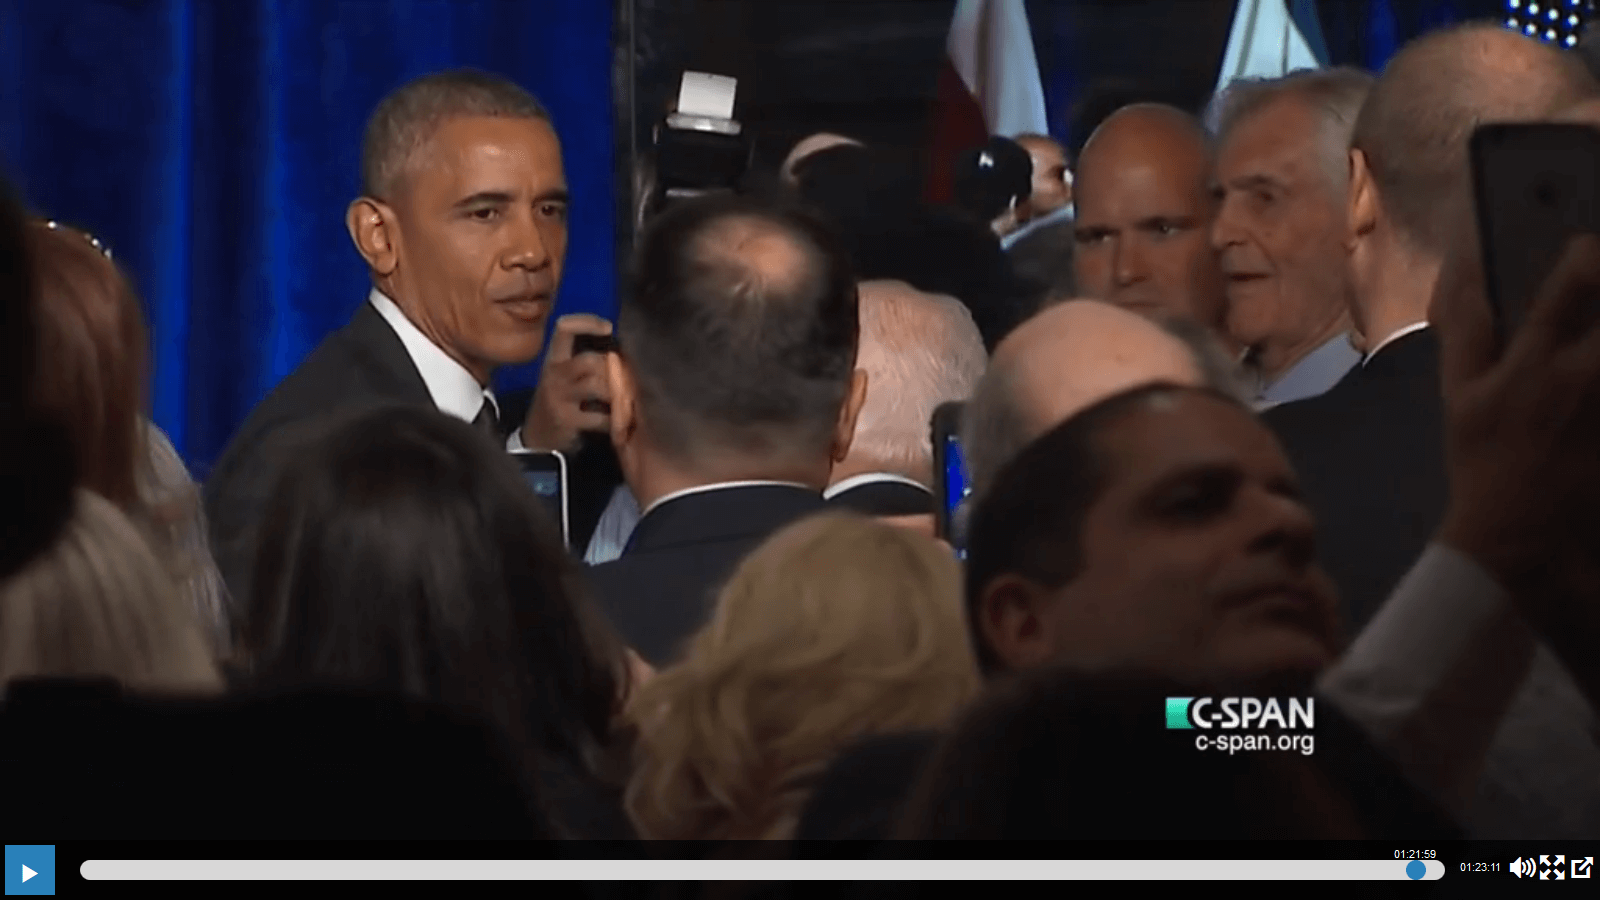 Obama after his speech at Israeli embassy Jan. 27, 2016, on CSPAN